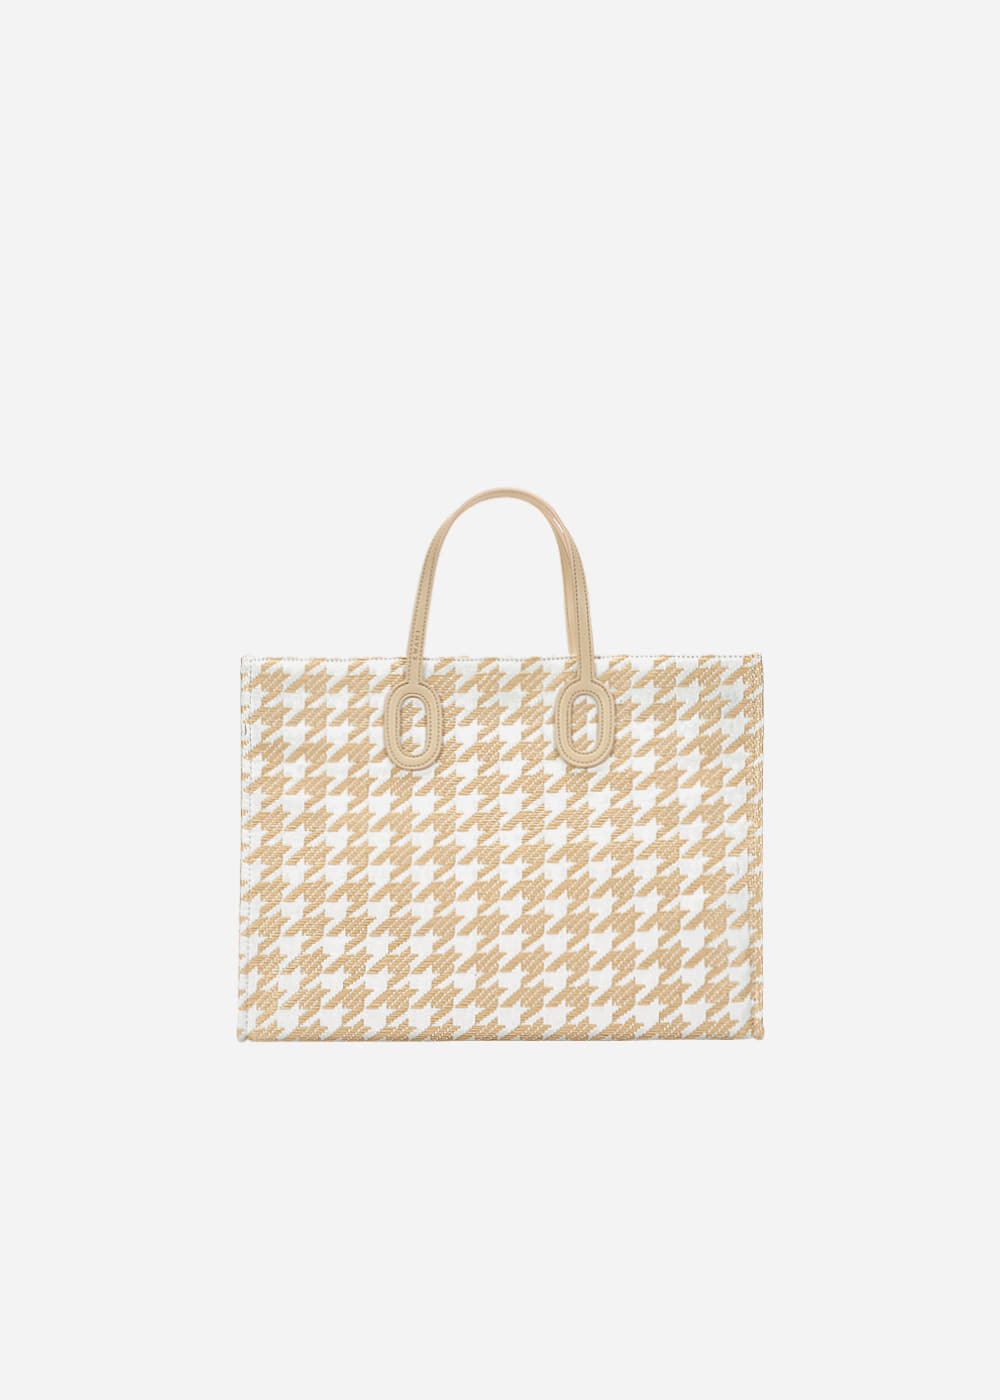 O Handle Houndstooth Beige